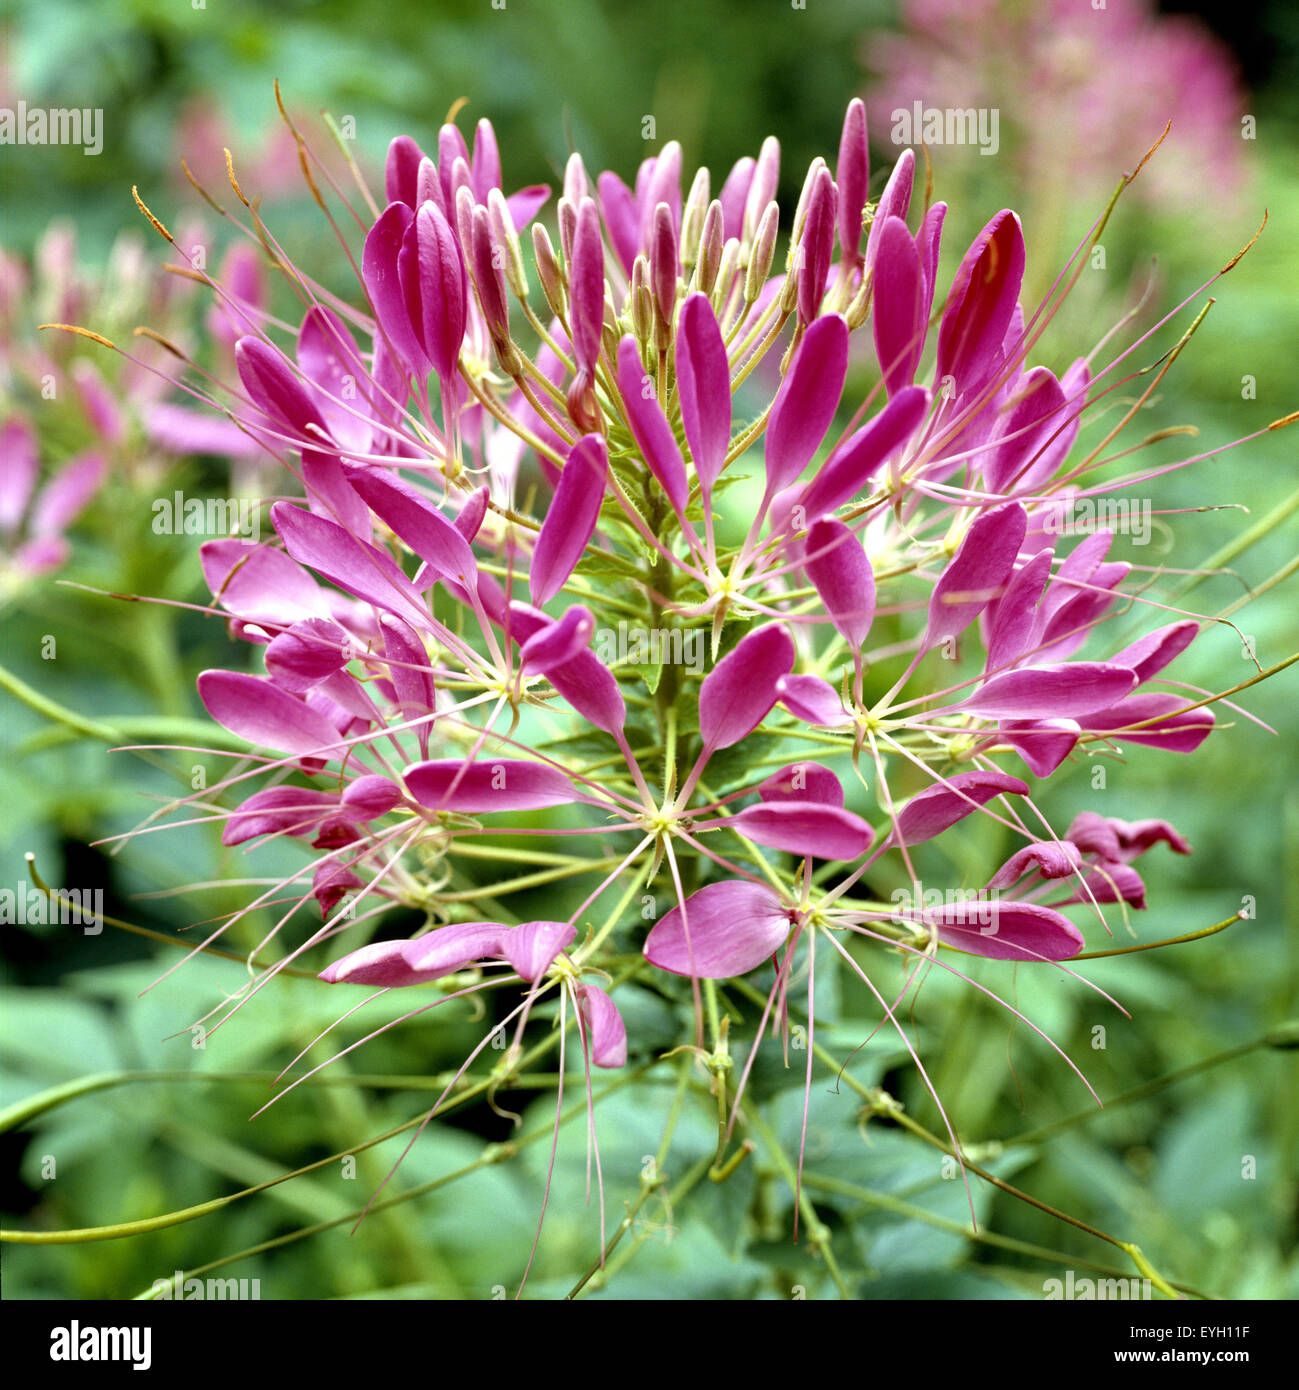 Spinnenblume, Cleome spinosa Stock Photo